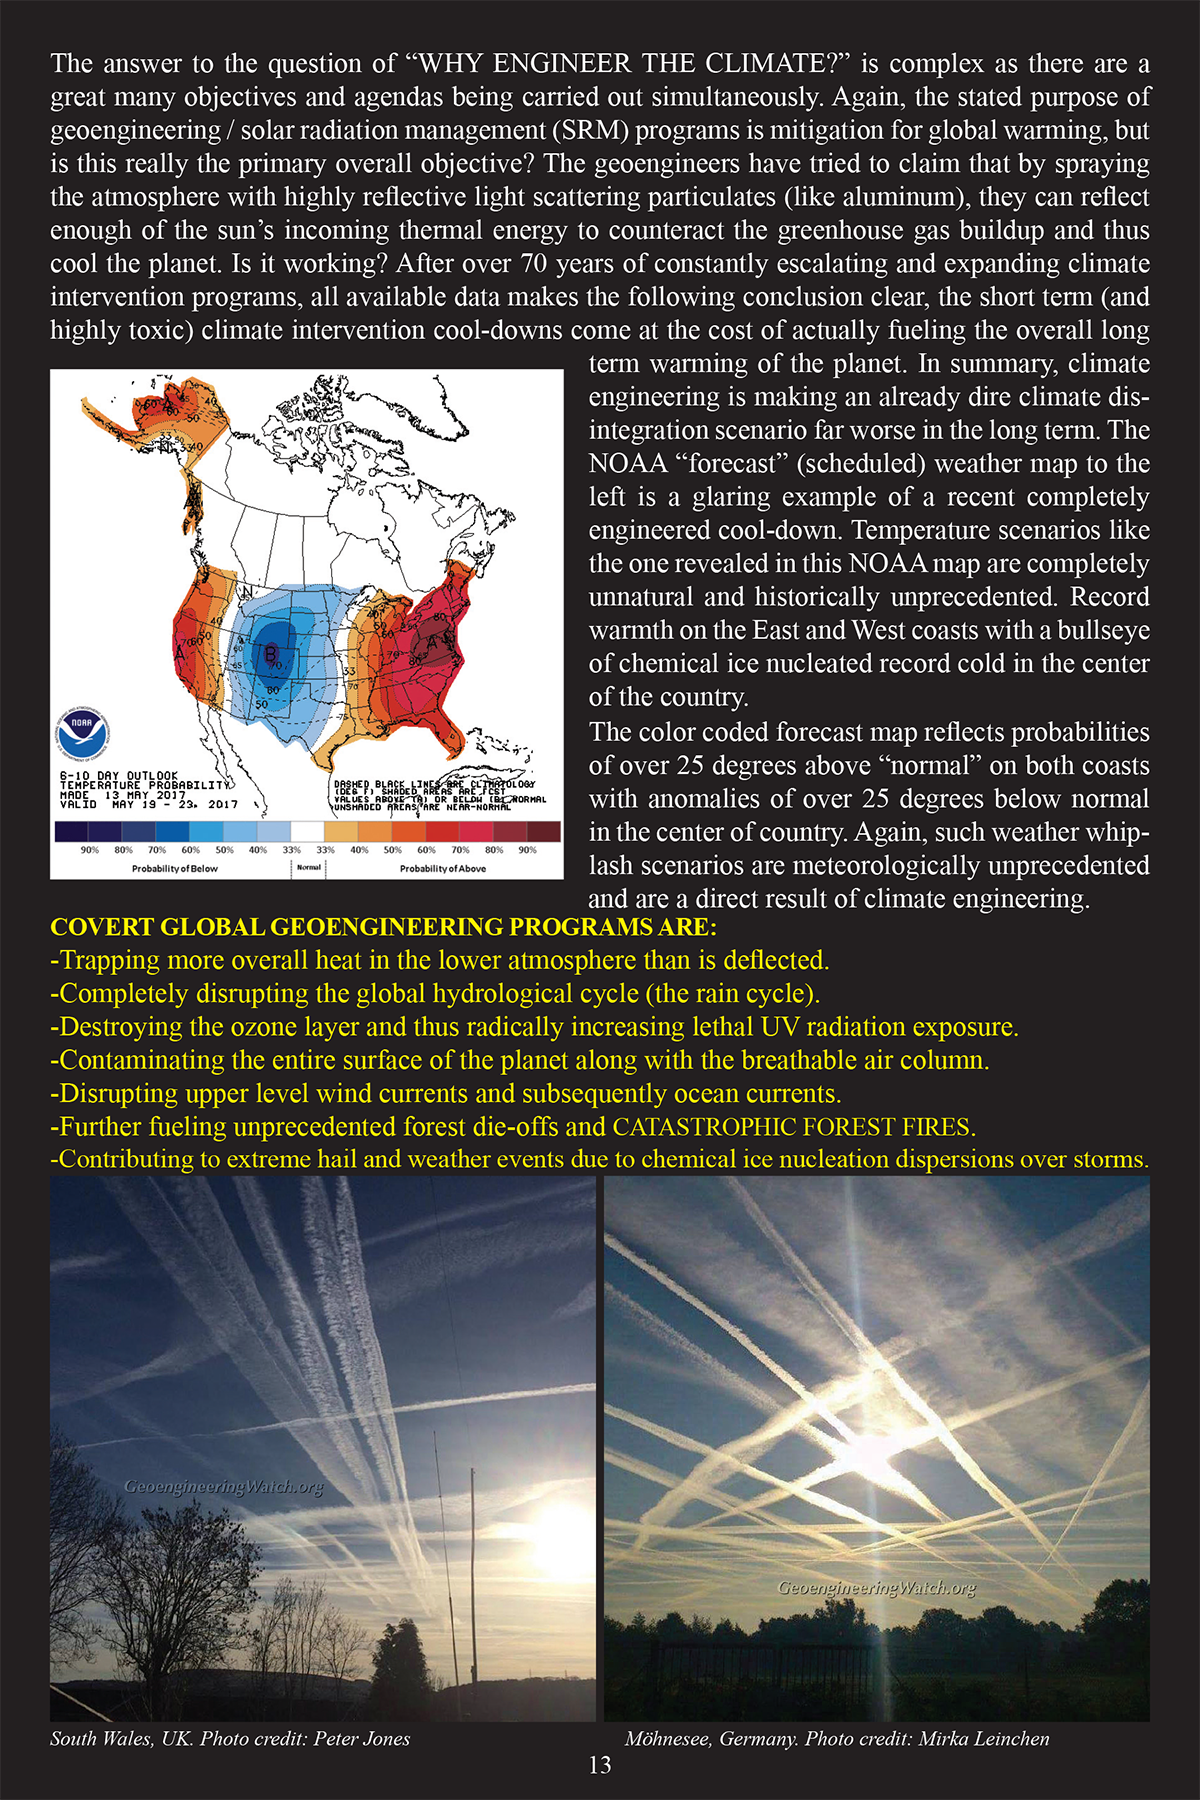 Climate Engineering Fact And Photo Summary - page 13